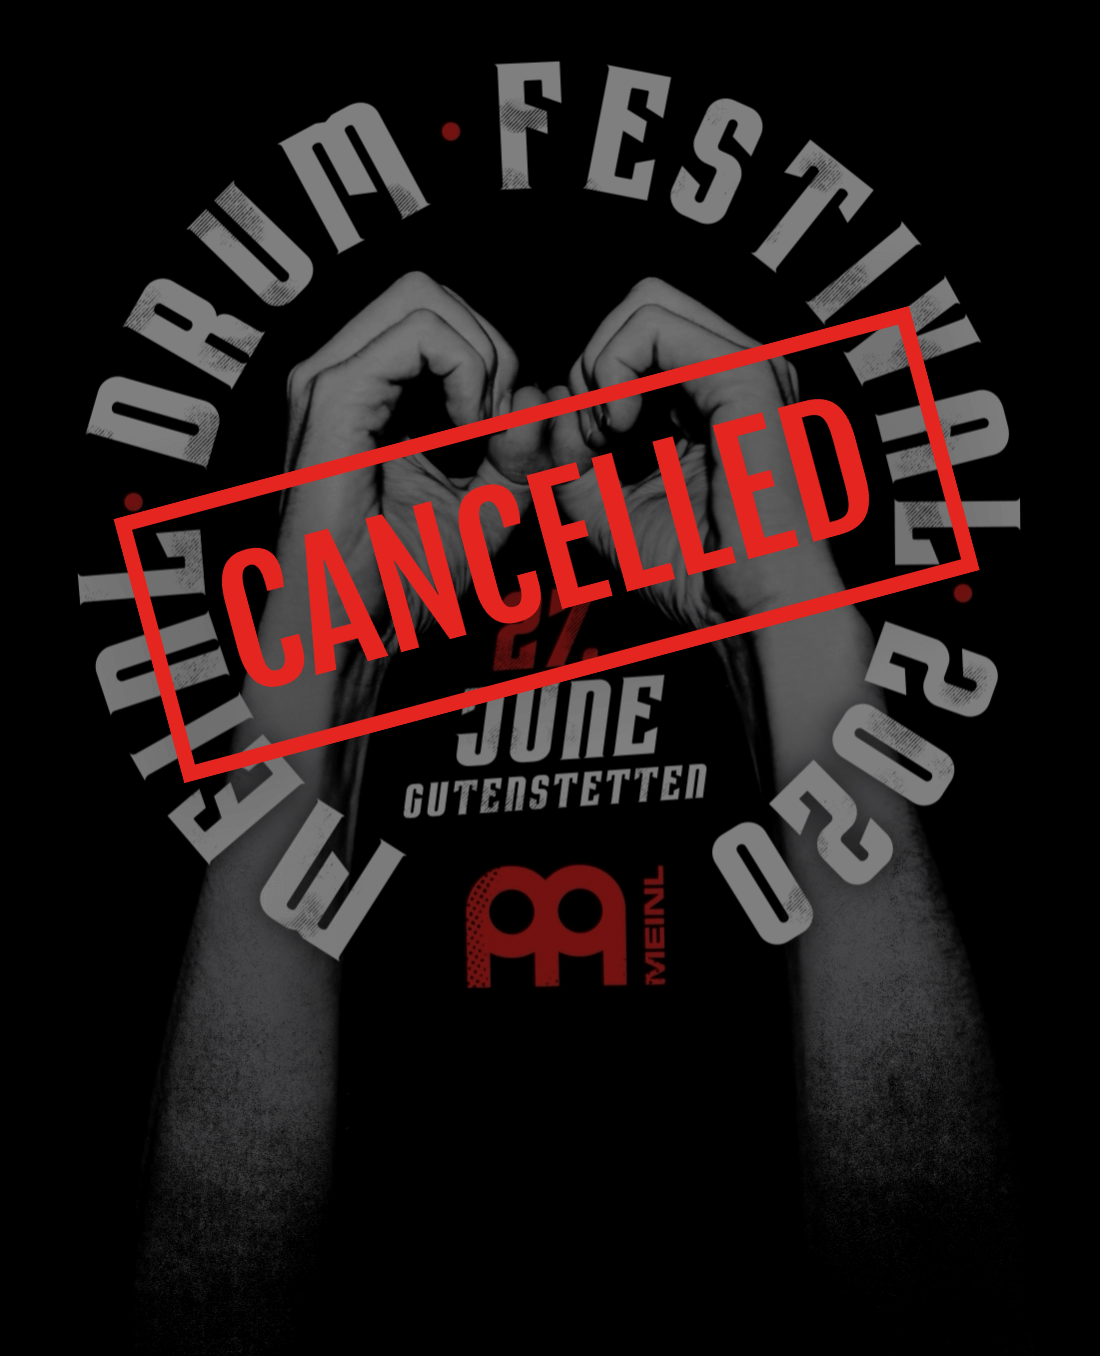 Meinl Drum Festival 2020 - cancelled